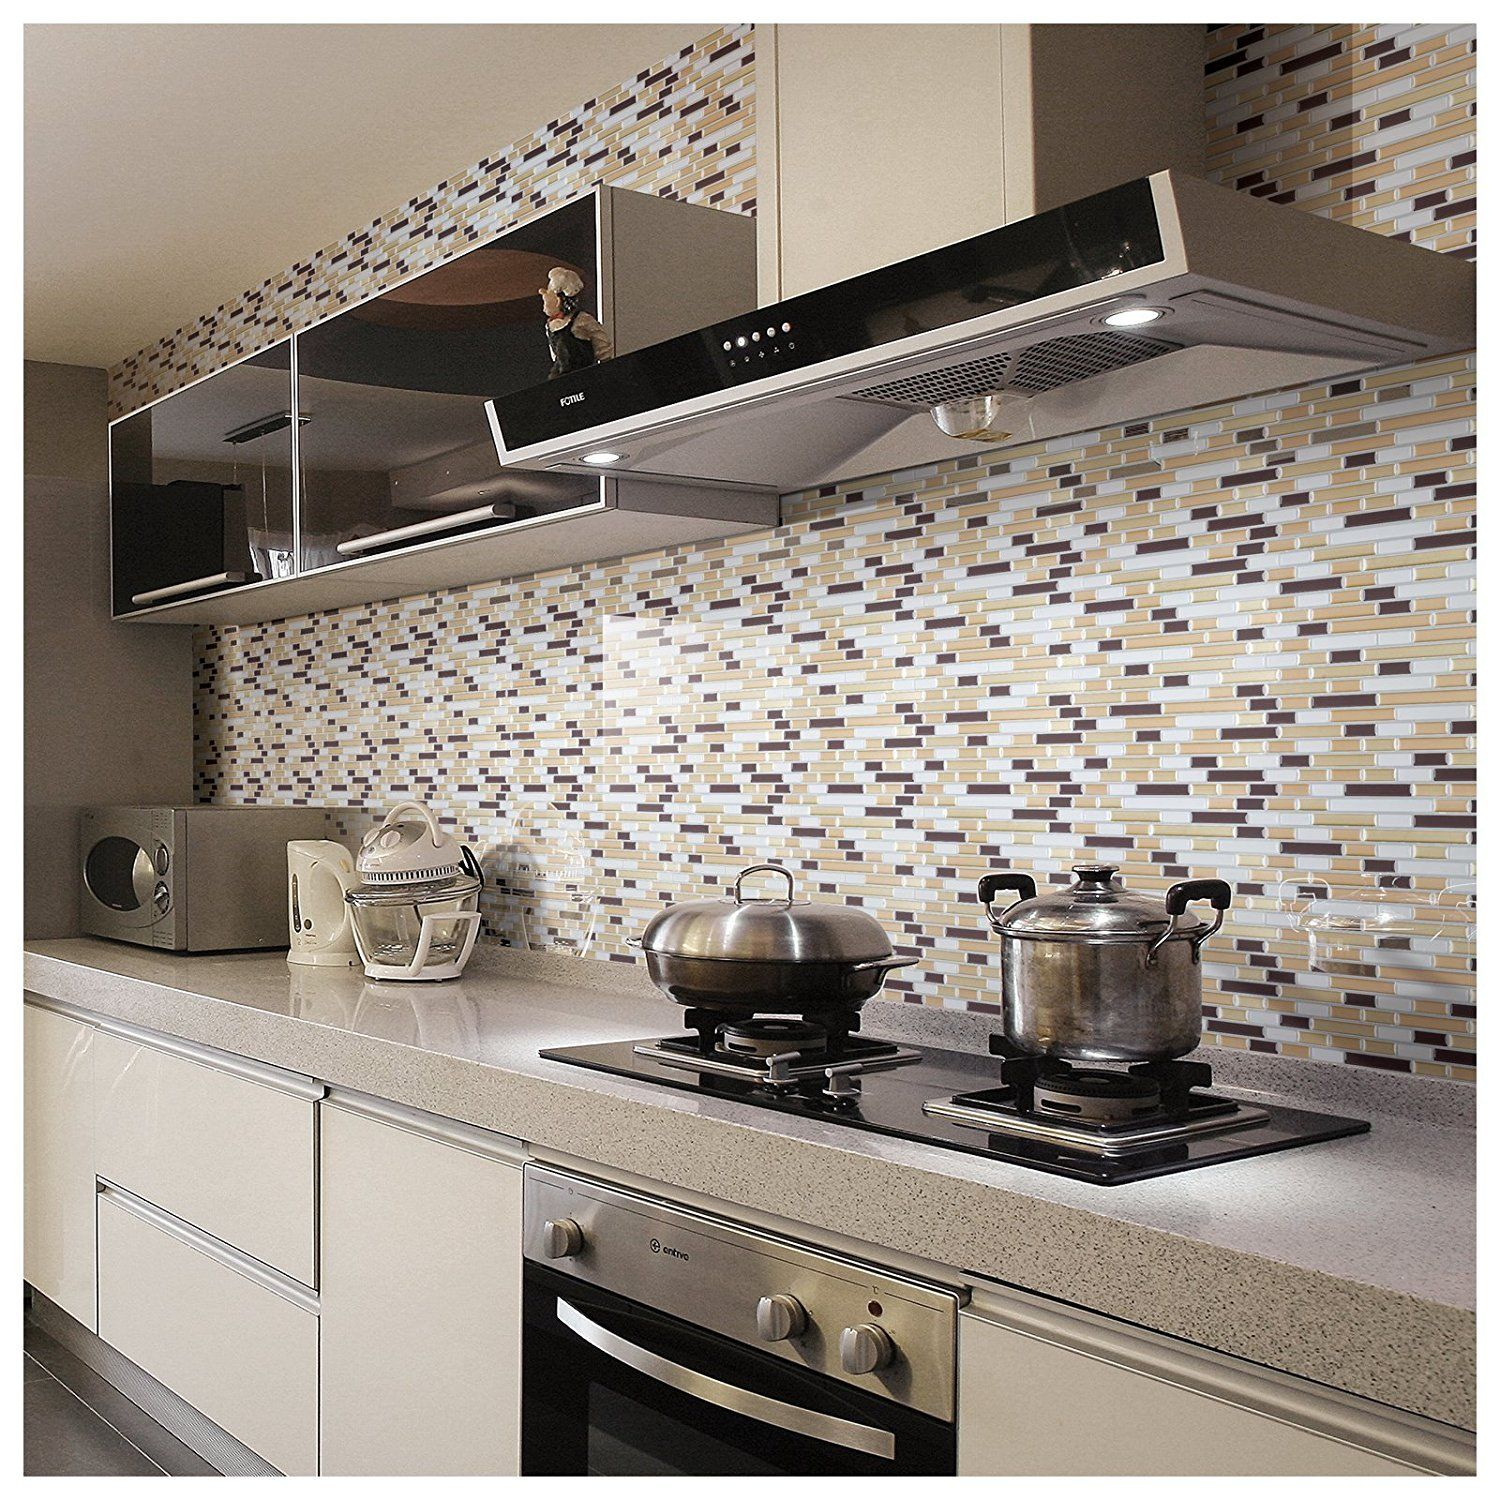 Awesome Peel And Stick Wall Tile Kitchen And Bathroom Backsplashes 10 Pcs